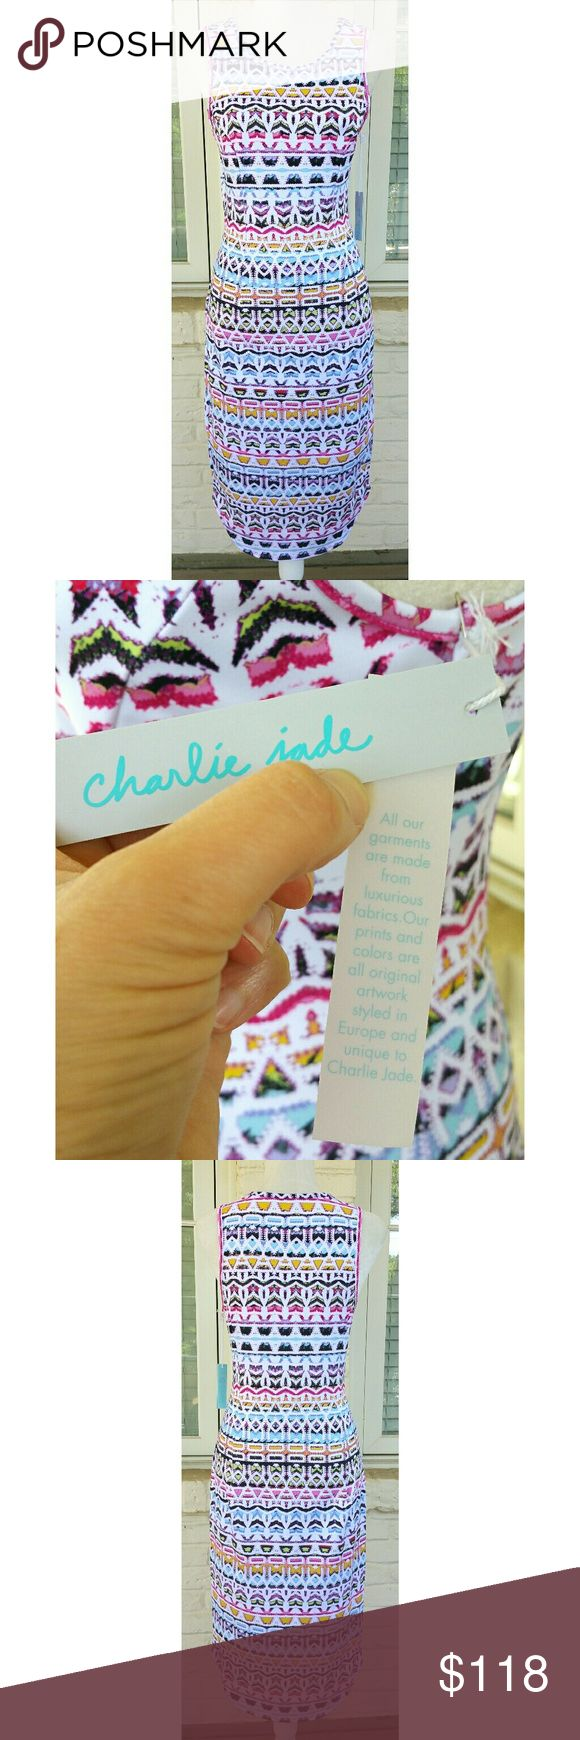 NWT, Charlie Jade Scuba Midi Multi Print Dress Bright, colorful and fun is this Charlie Jade Scuba multi print sleeveless midi dress. Has a nice stretch to it for added comfort. Polyester/Spandex. I have two sizes available. Charlie Jade Dresses